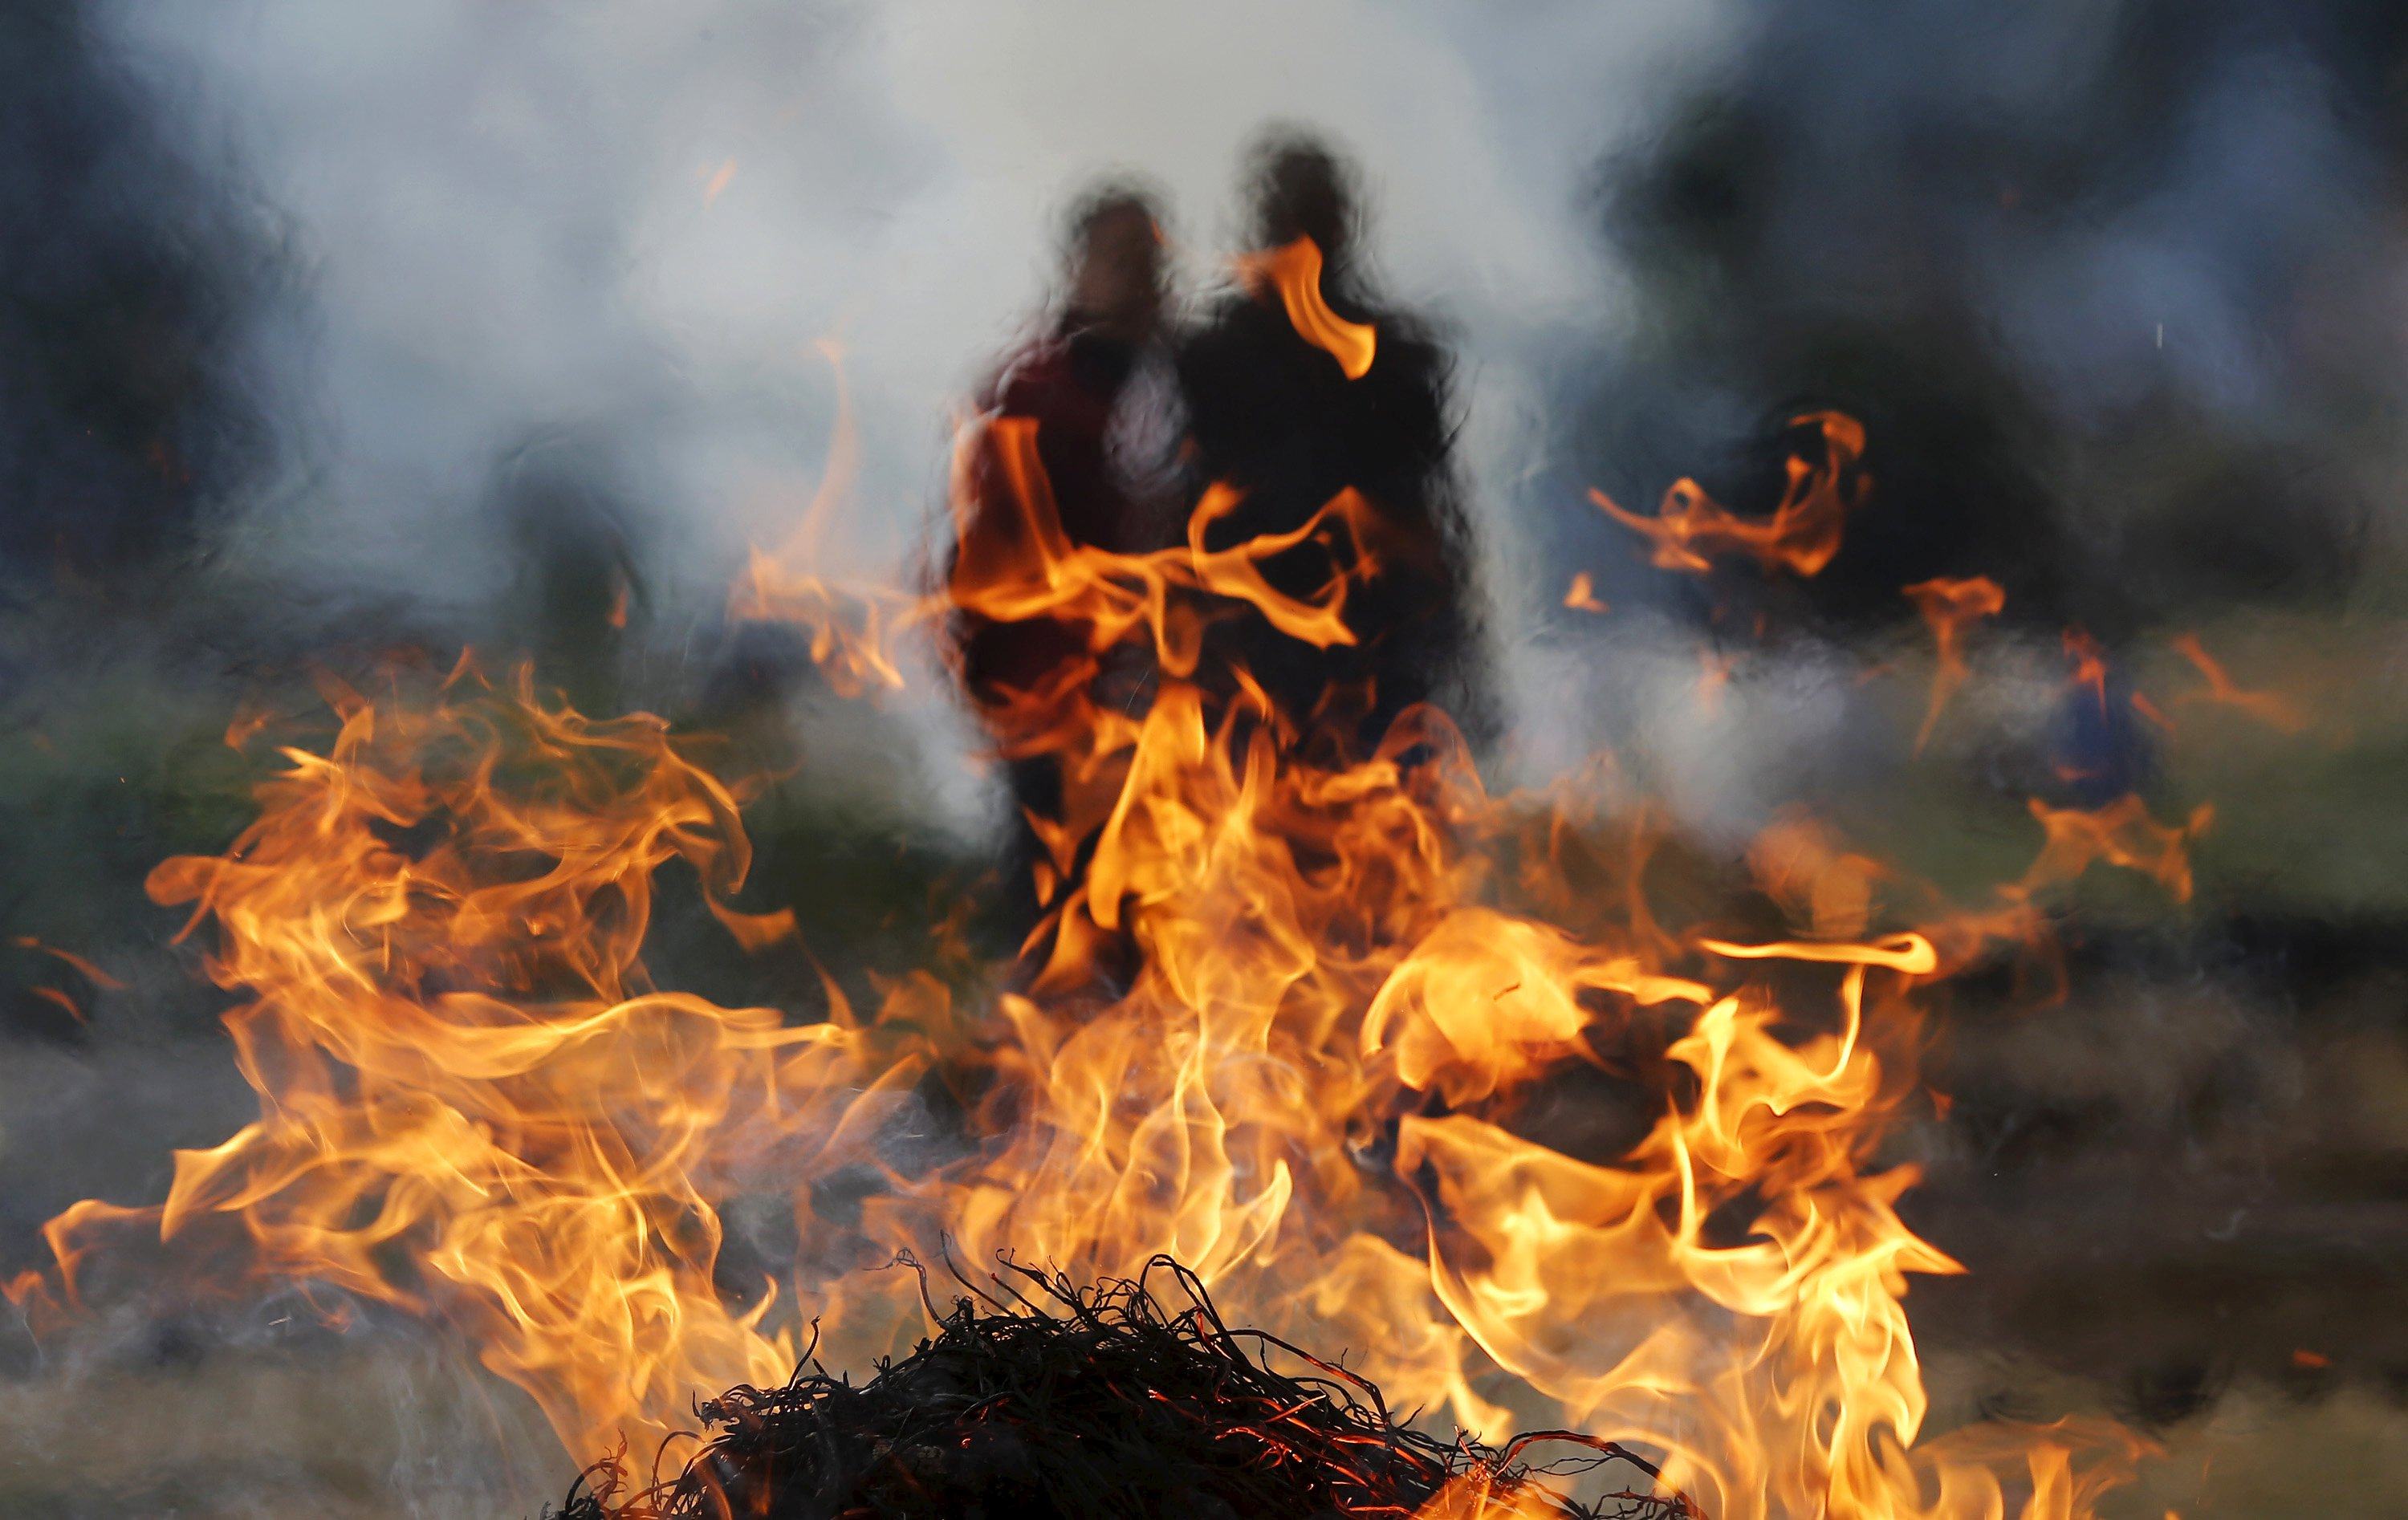 Electric Cremation vs The Traditional Funeral Pyre